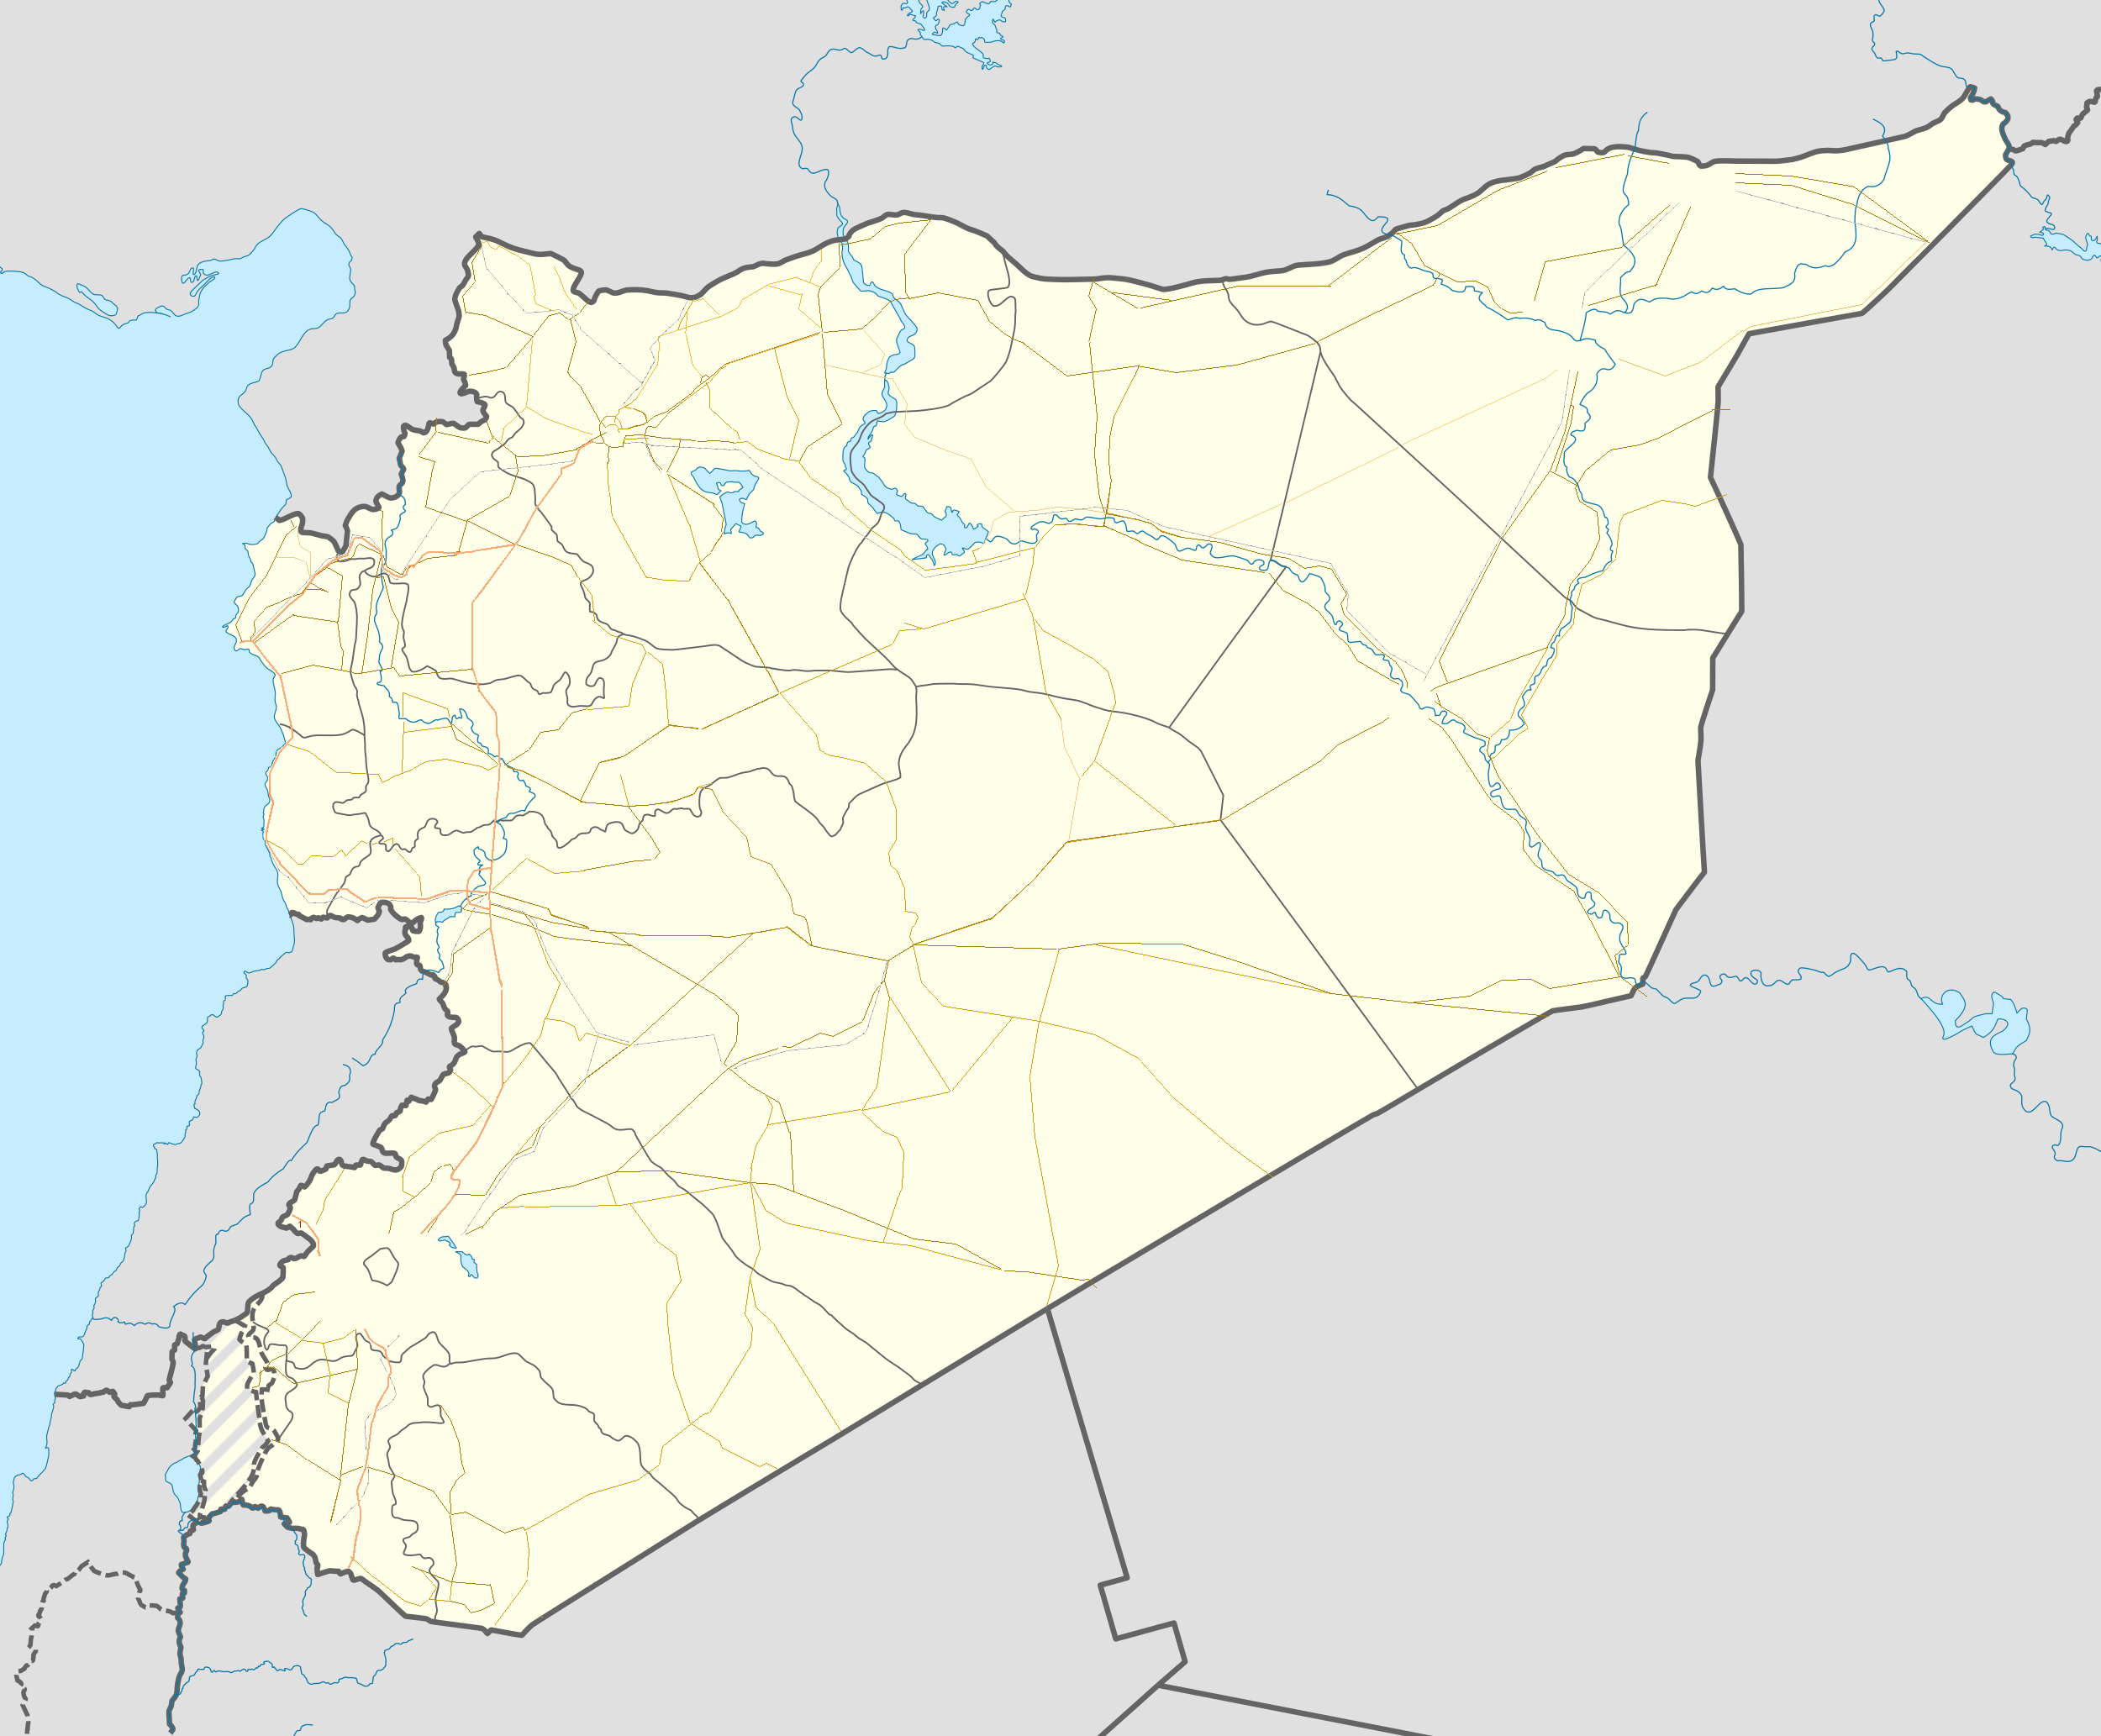 Template syrian civil war detailed map sandbox wikipedia for Syria war template